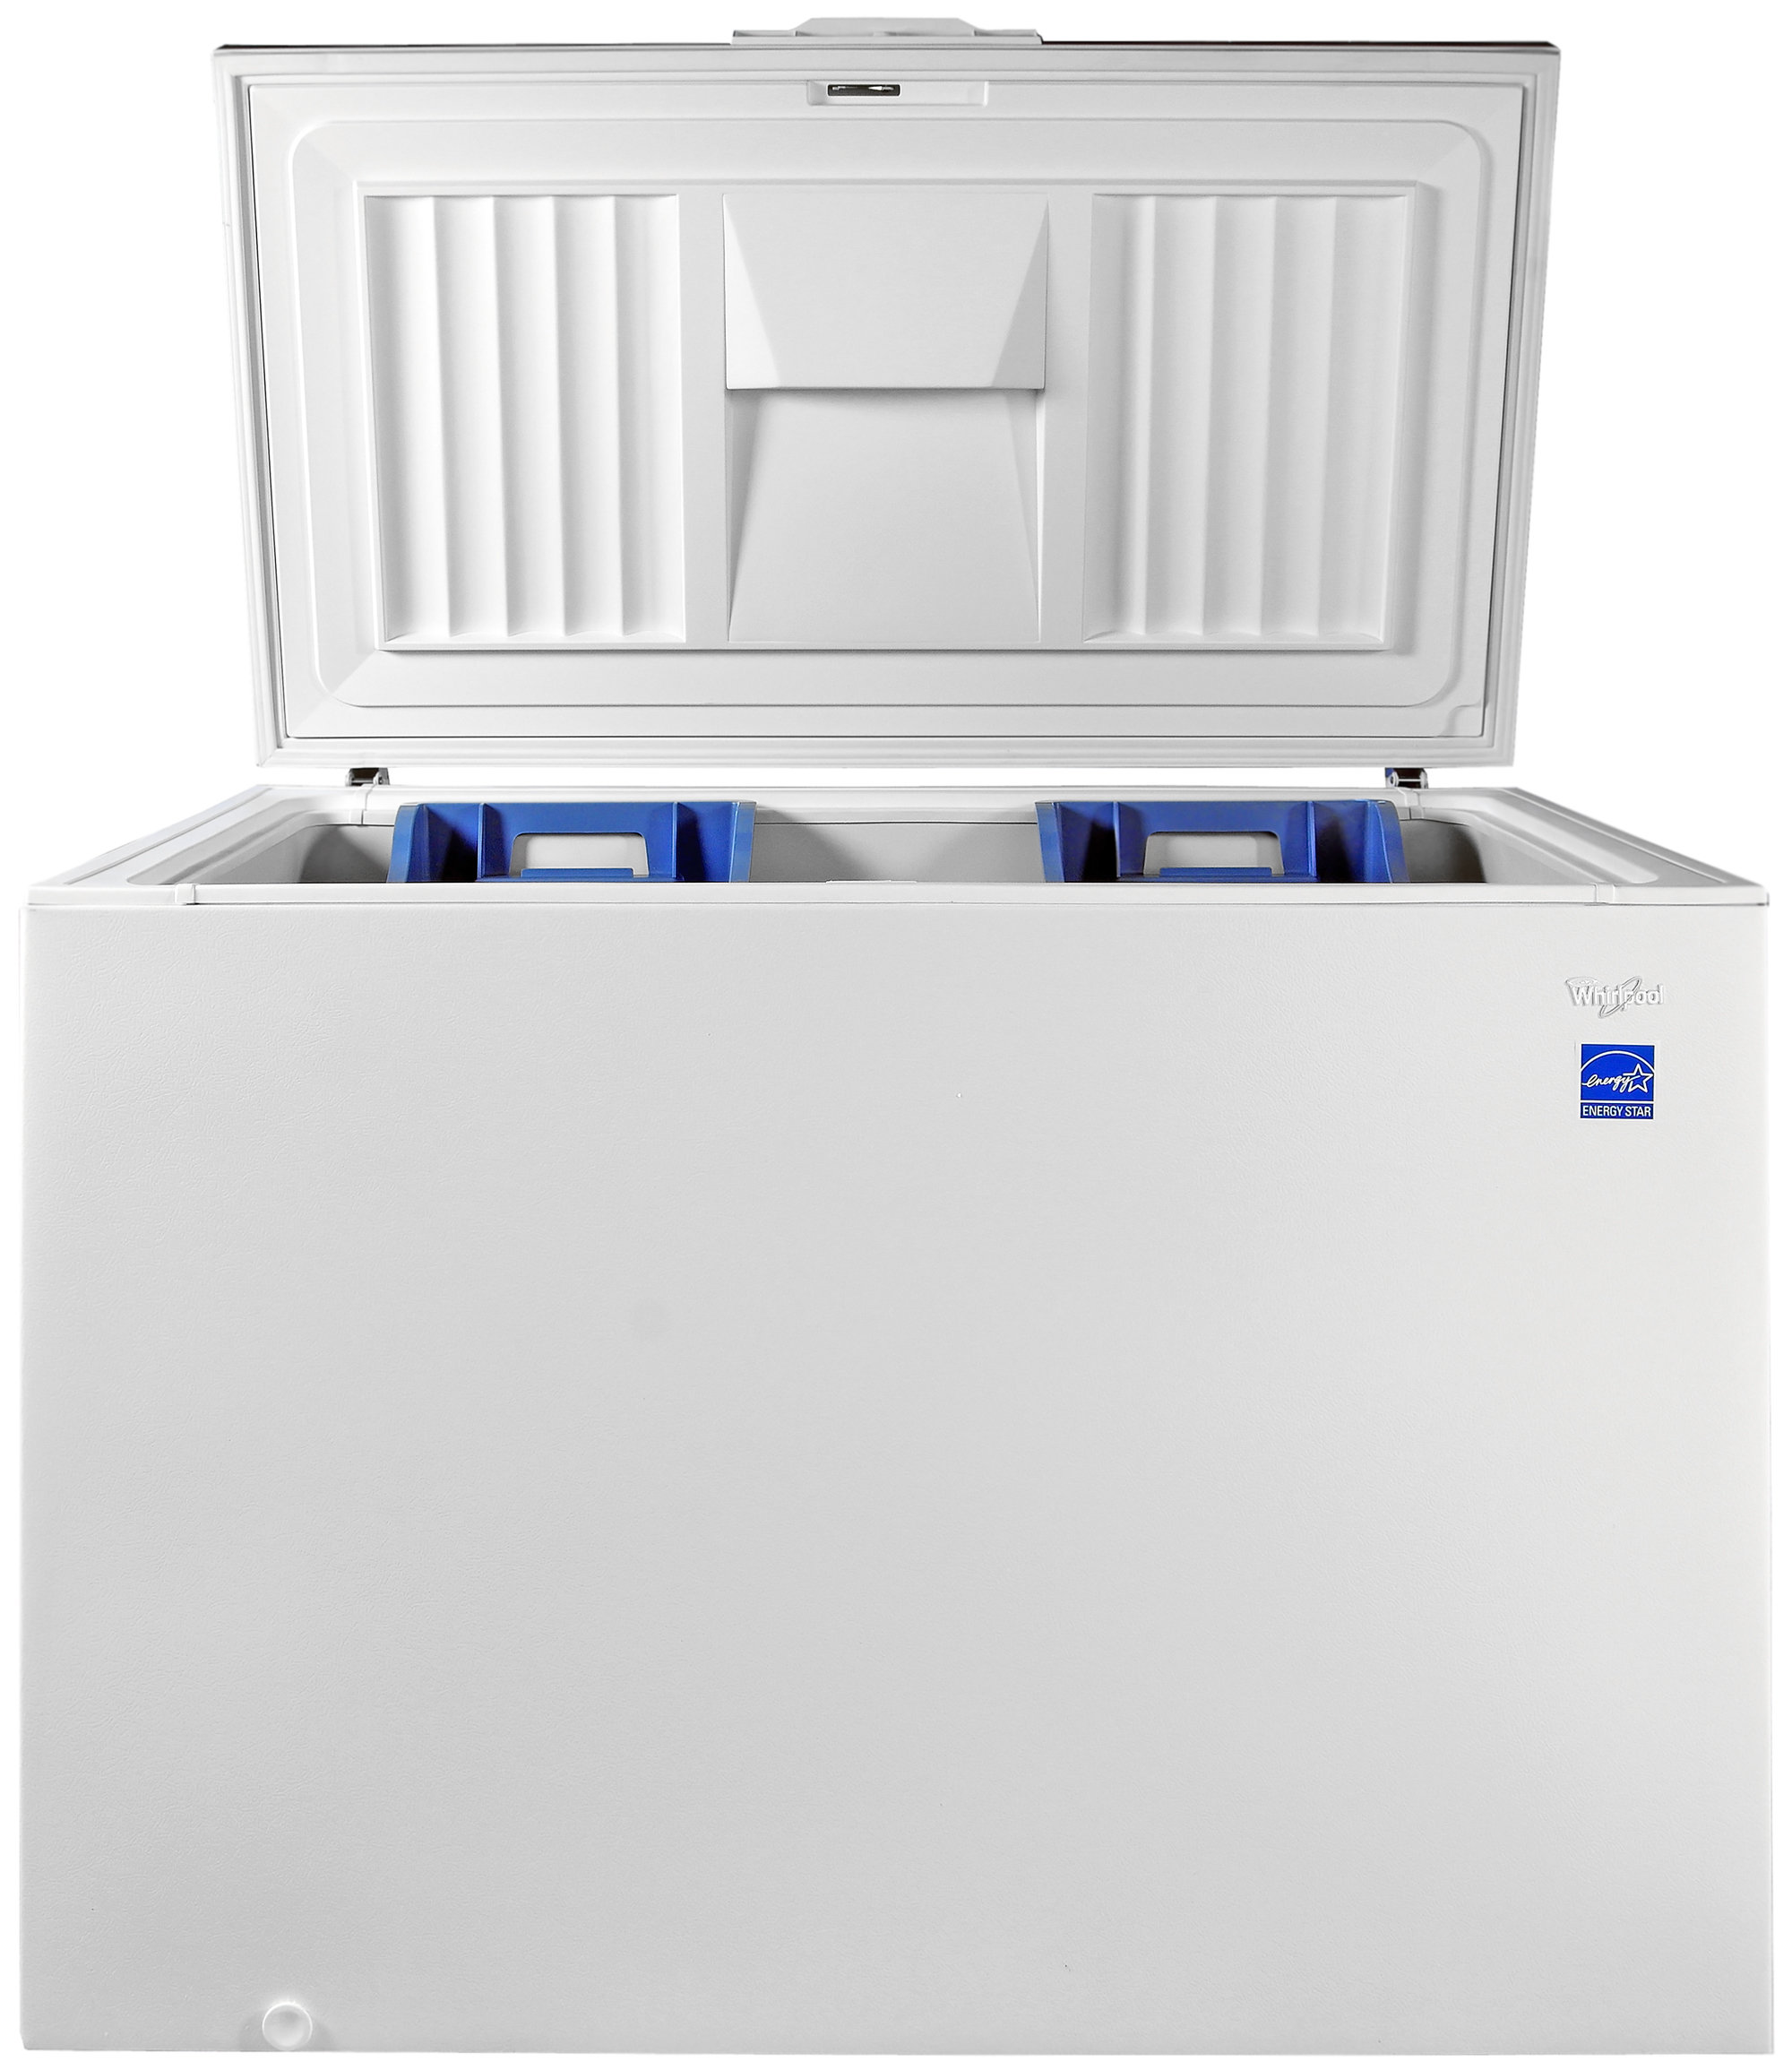 The lid on the Whirlpool EH151FXTQ doesn't feature an internal light.